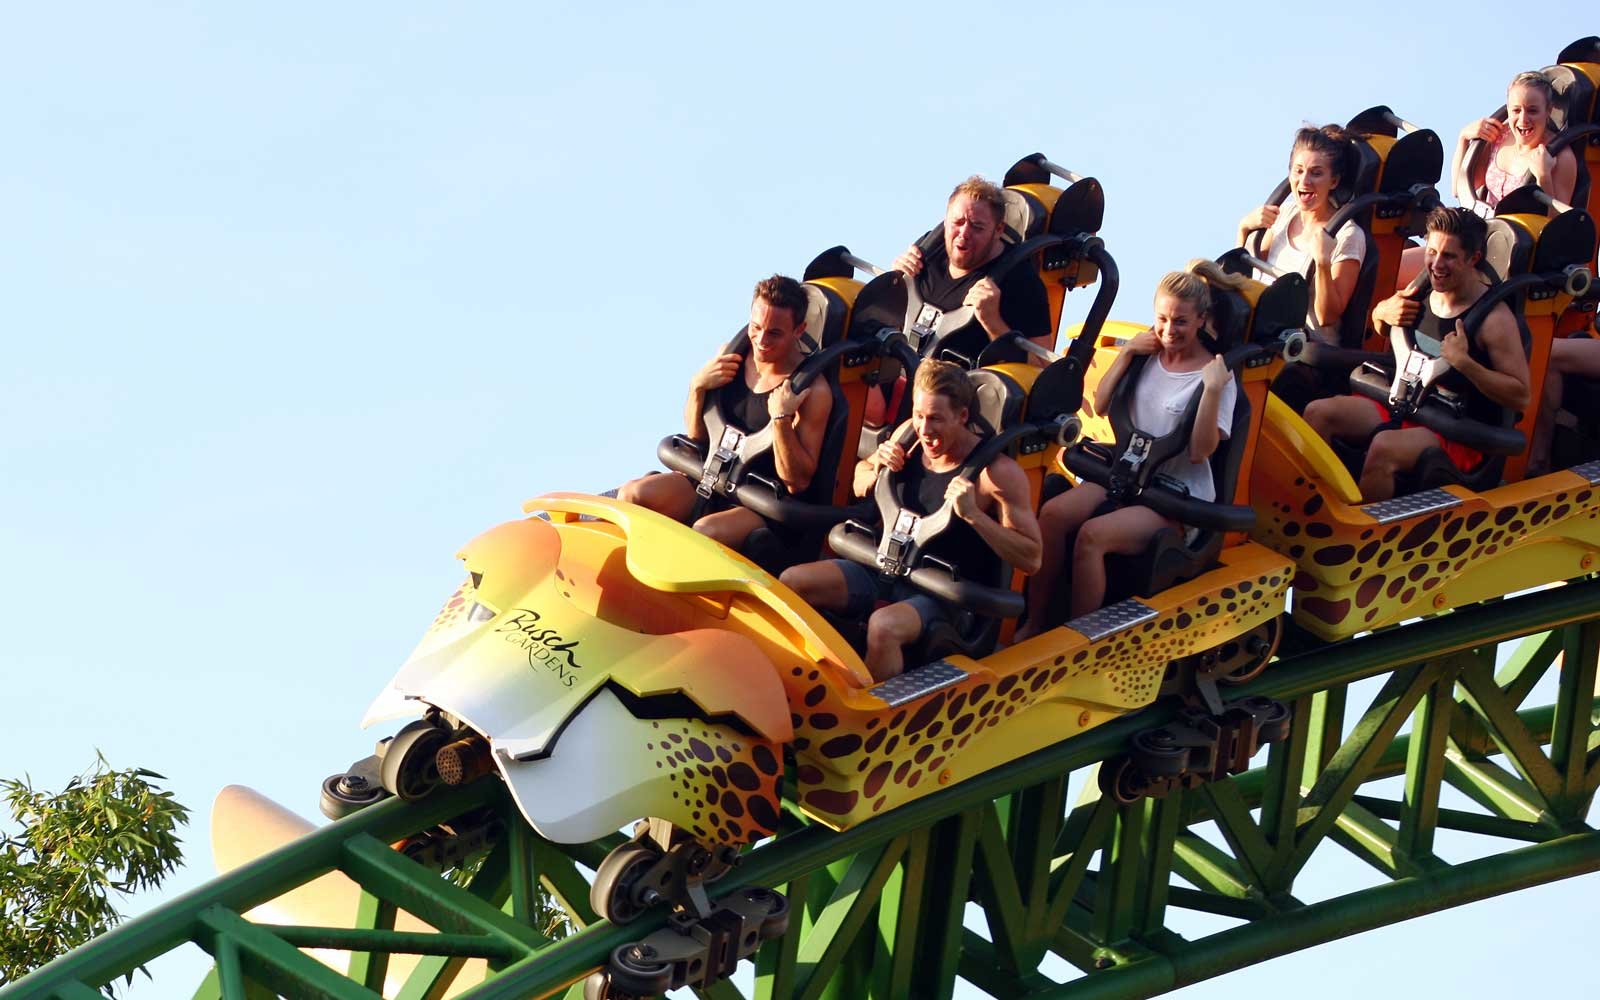 busch garden deals. Rides At Busch Gardens Tampa Garden Deals